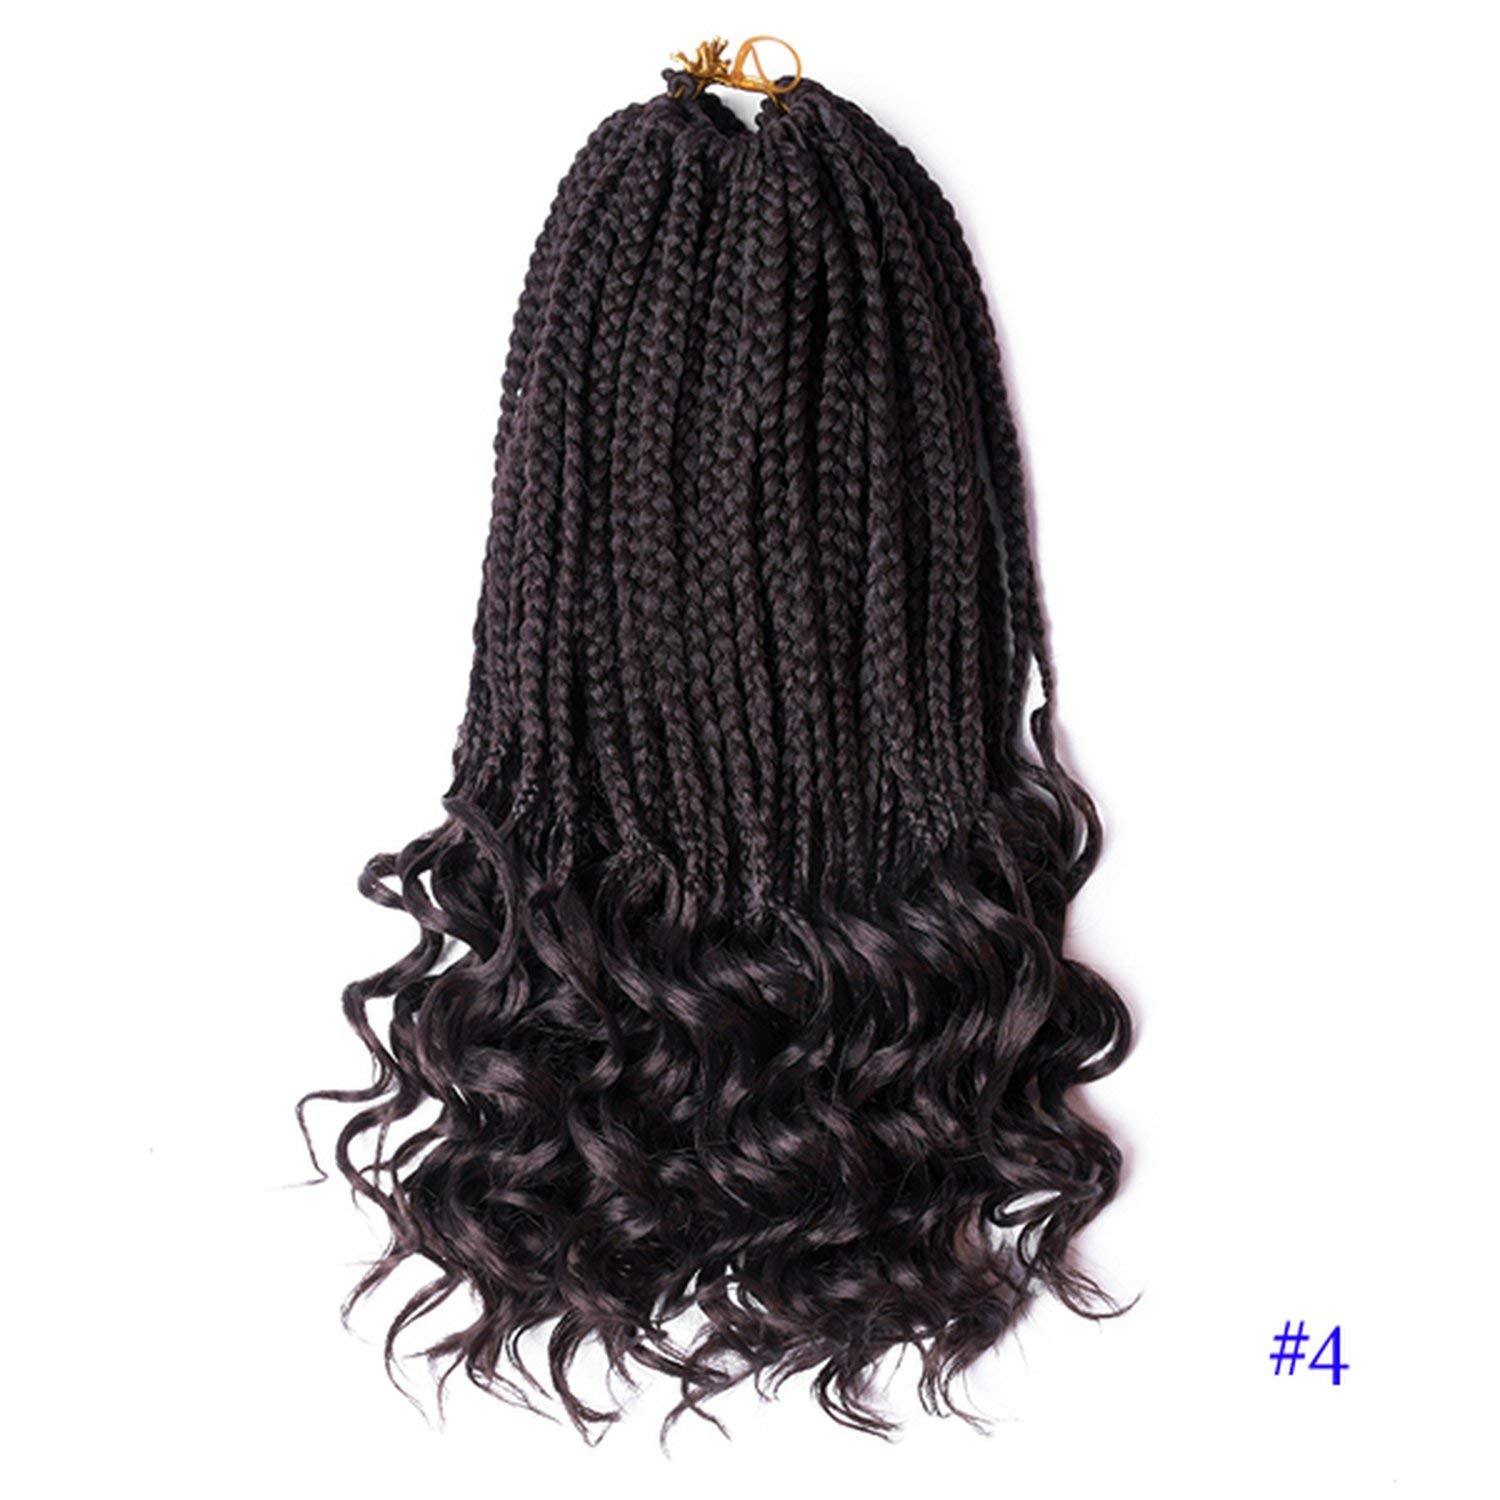 18 Inch Crochet Hair Box Braids Curly Ends Ombre Kanekalon Synthetic Hair for Braid 22 Strands Braiding Hair Extensions,#4,14inches,10Packs by Ting room